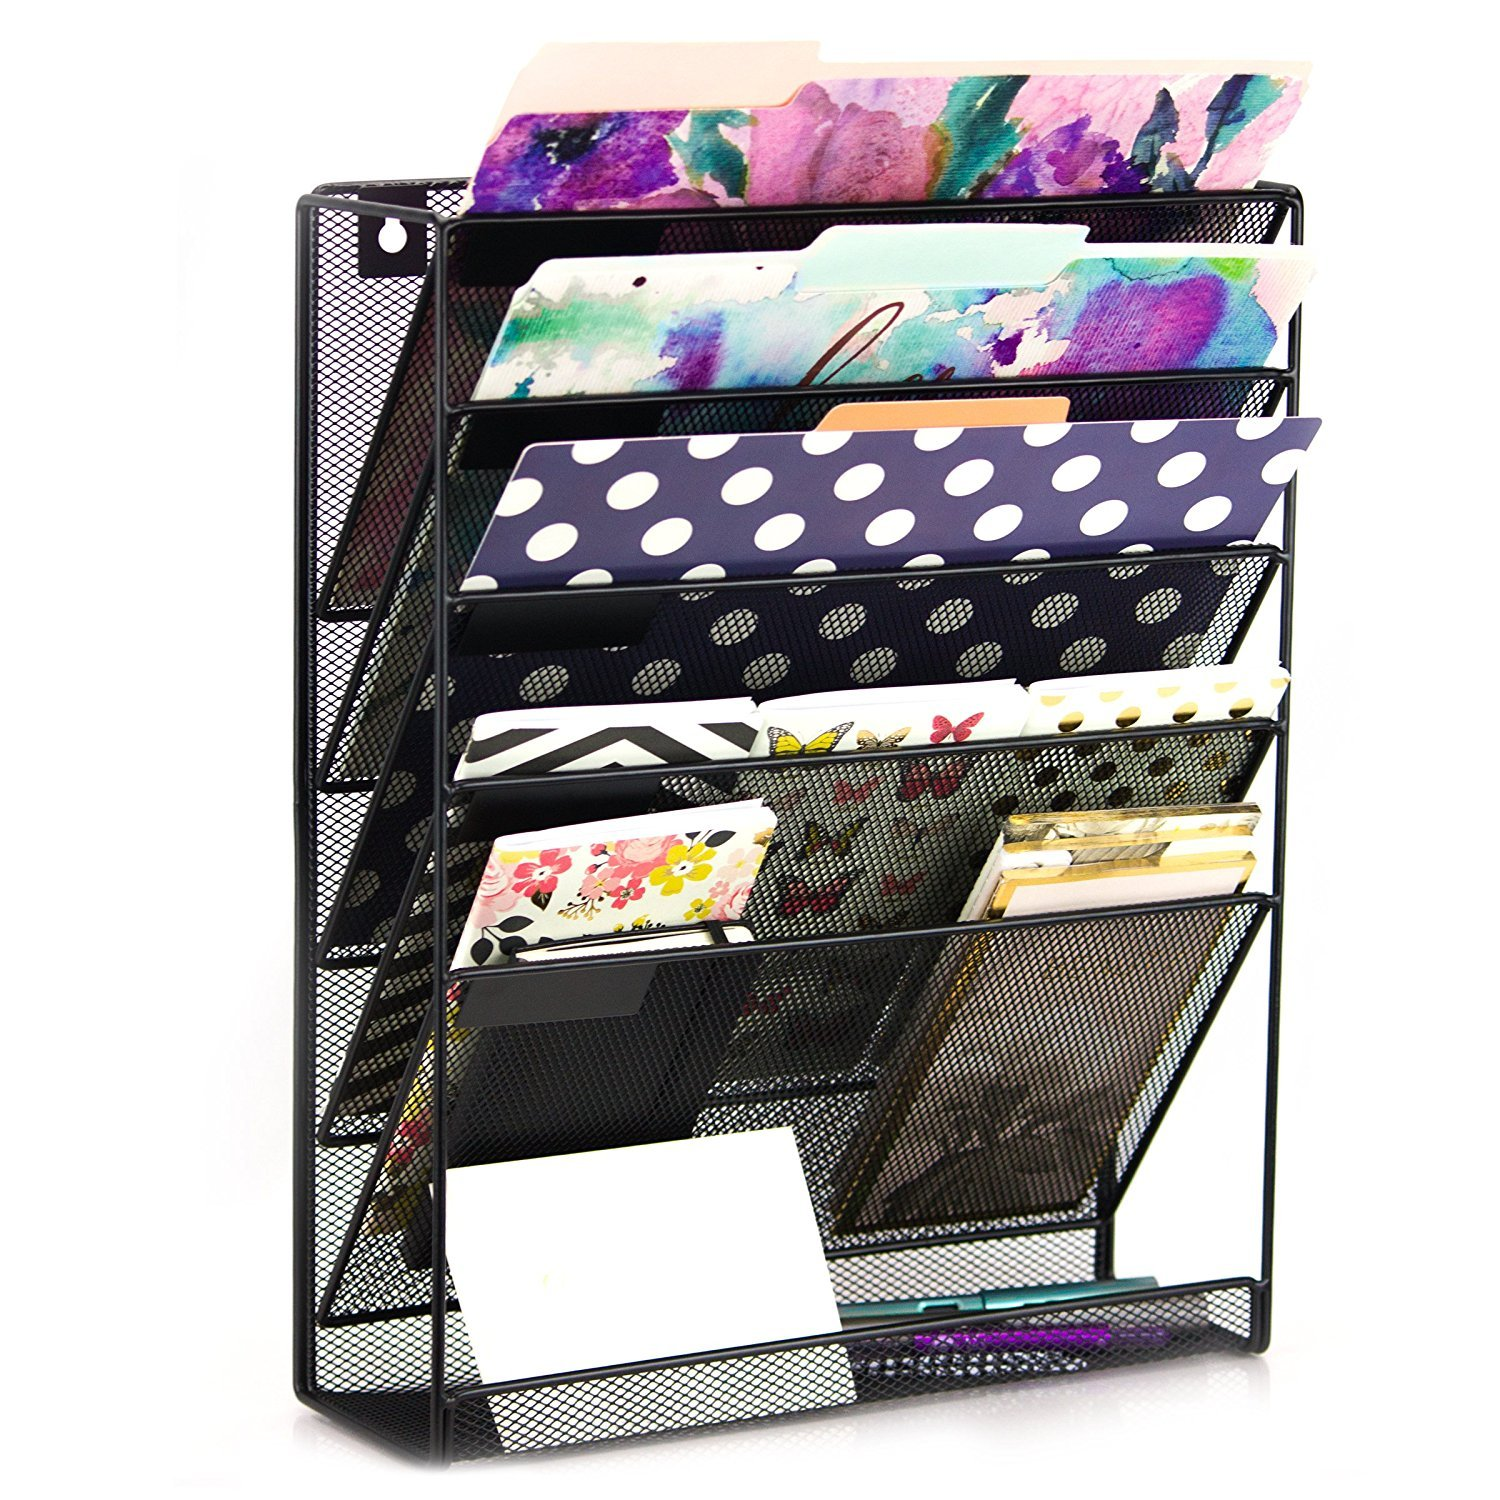 Wall Hanging File Holder Organizer for Office Home, 5-Tier Black Metal- Yuugen Products by Yuugen Products (Image #4)